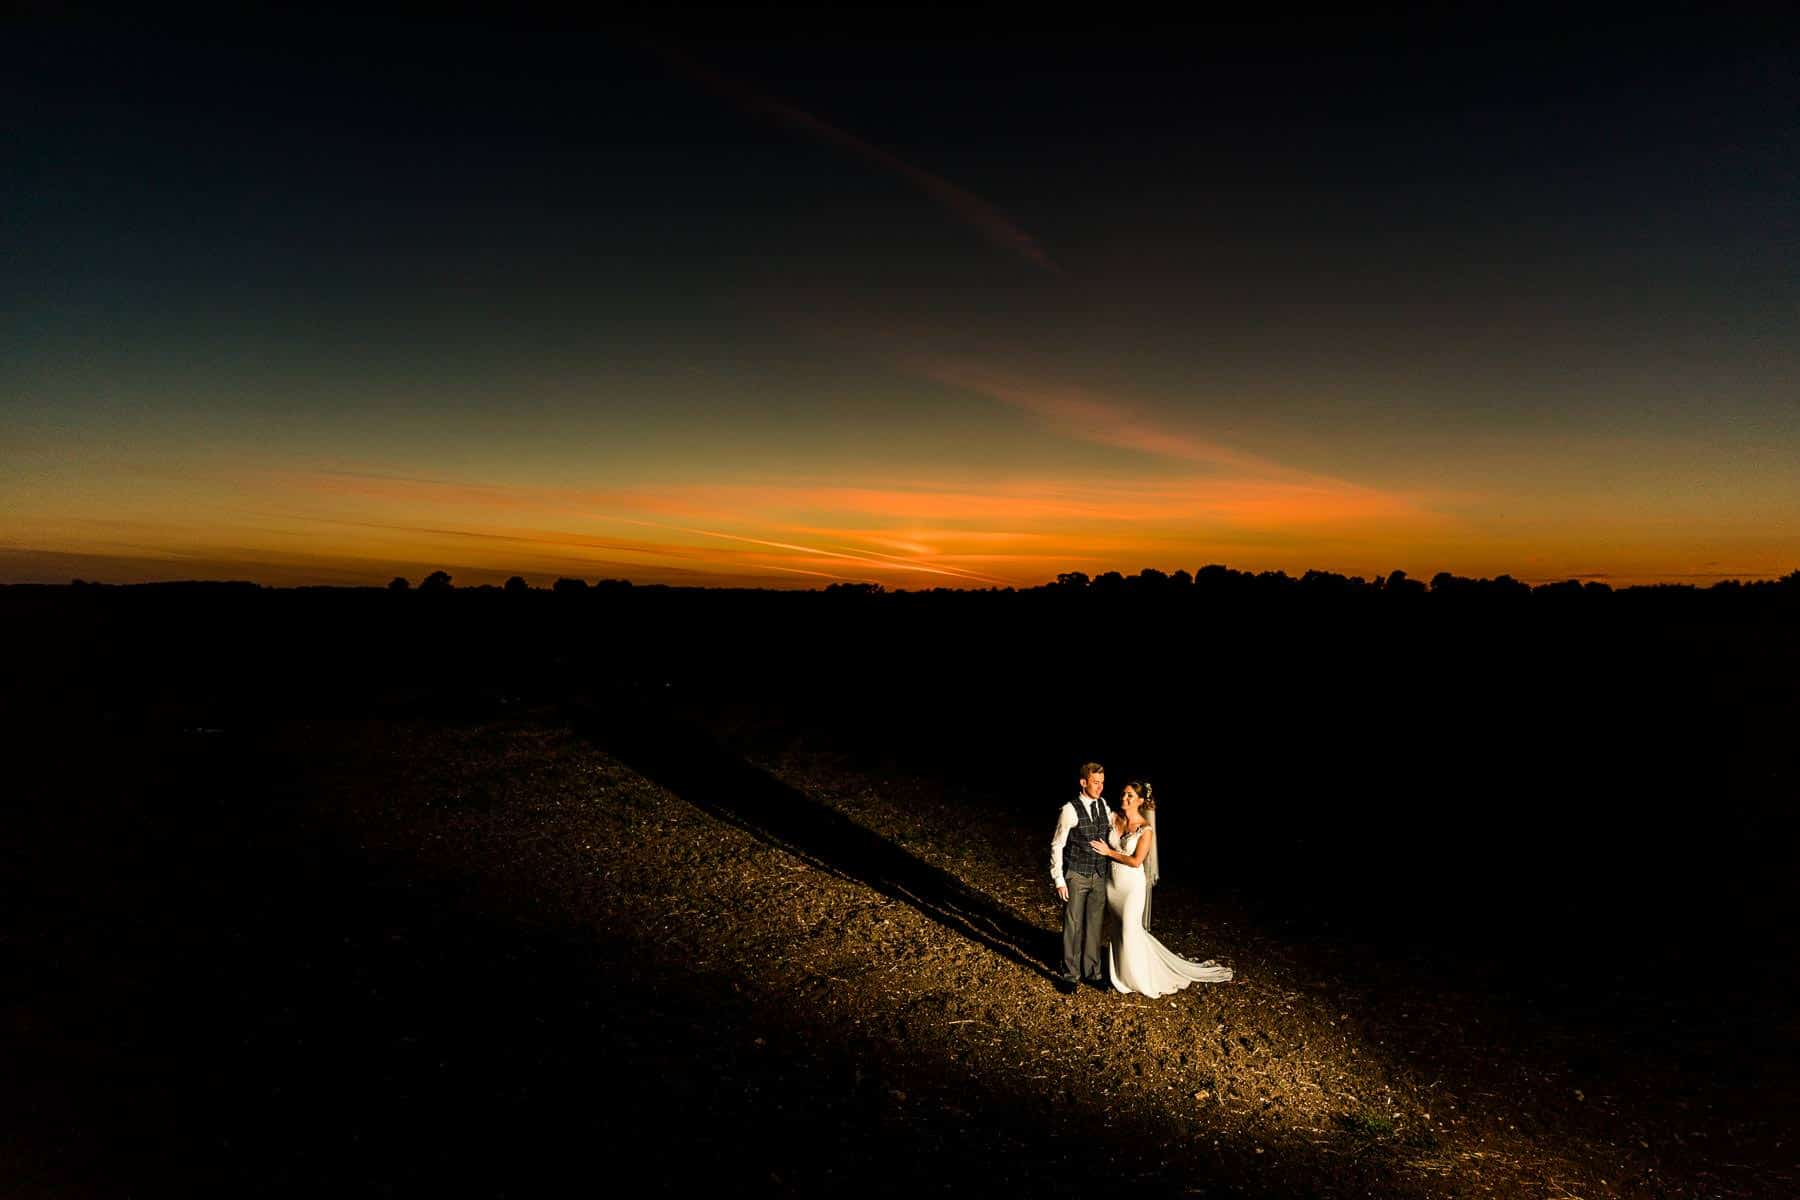 Stunning dusk photos of the wedding couple